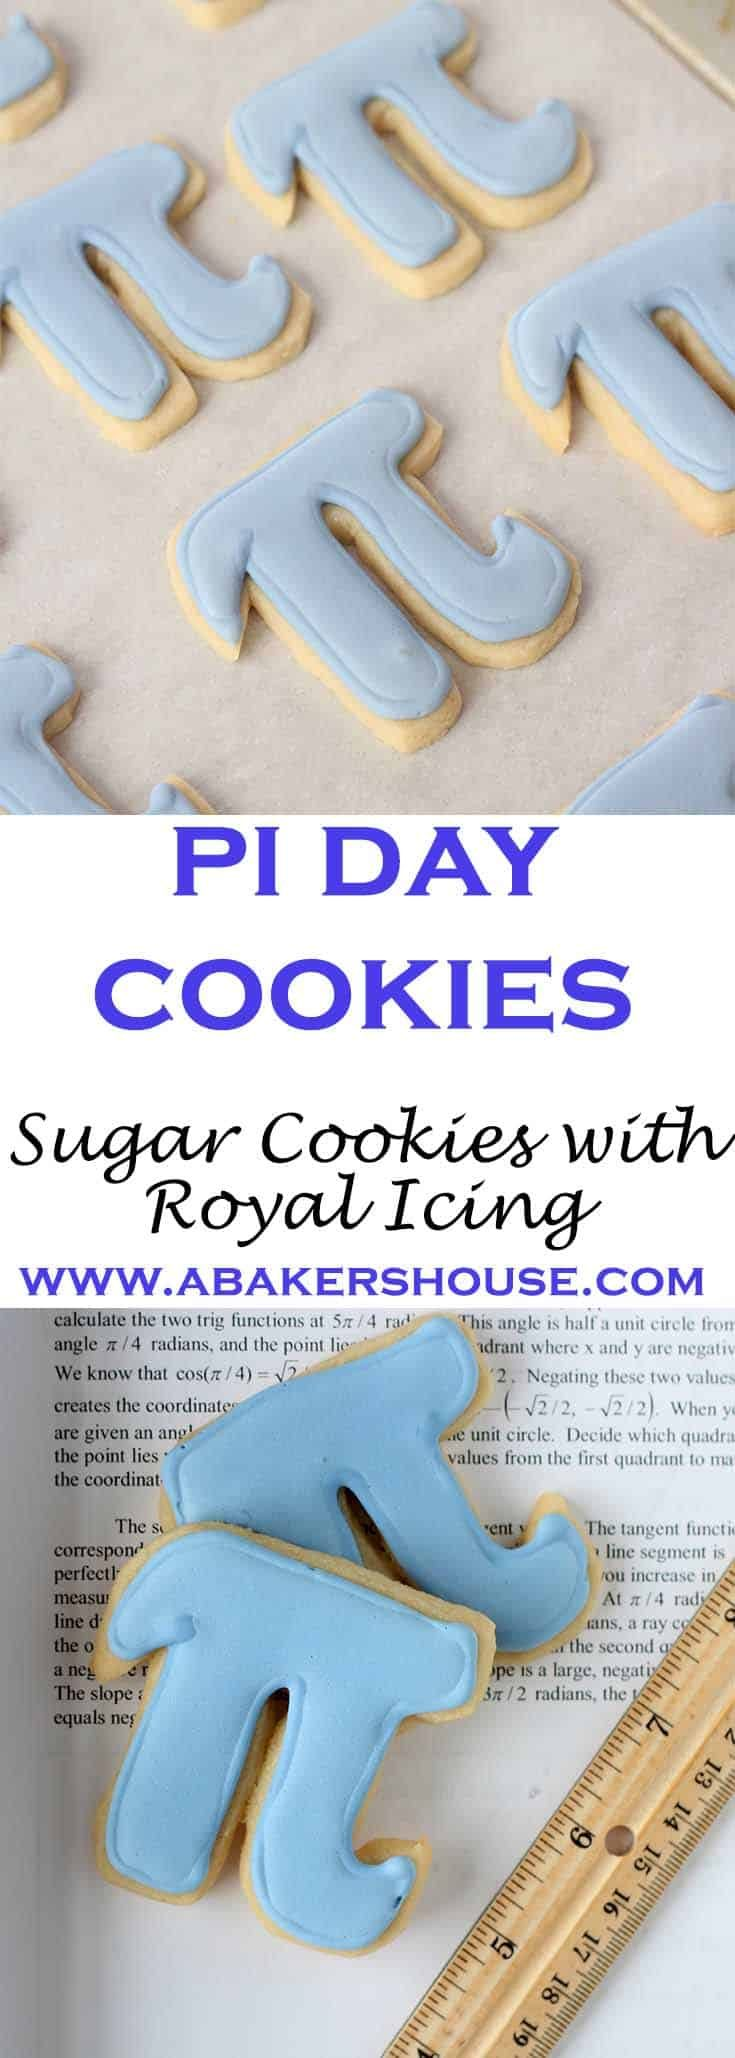 Pi Day Cookies are a reason to celebrate on March 14th -- 3/14-- which is when mathematicians and cookie lovers alike celebrate Pi, 3.14. #decoratedcookies #royalicing #sugarcookies #piday #abakershouse